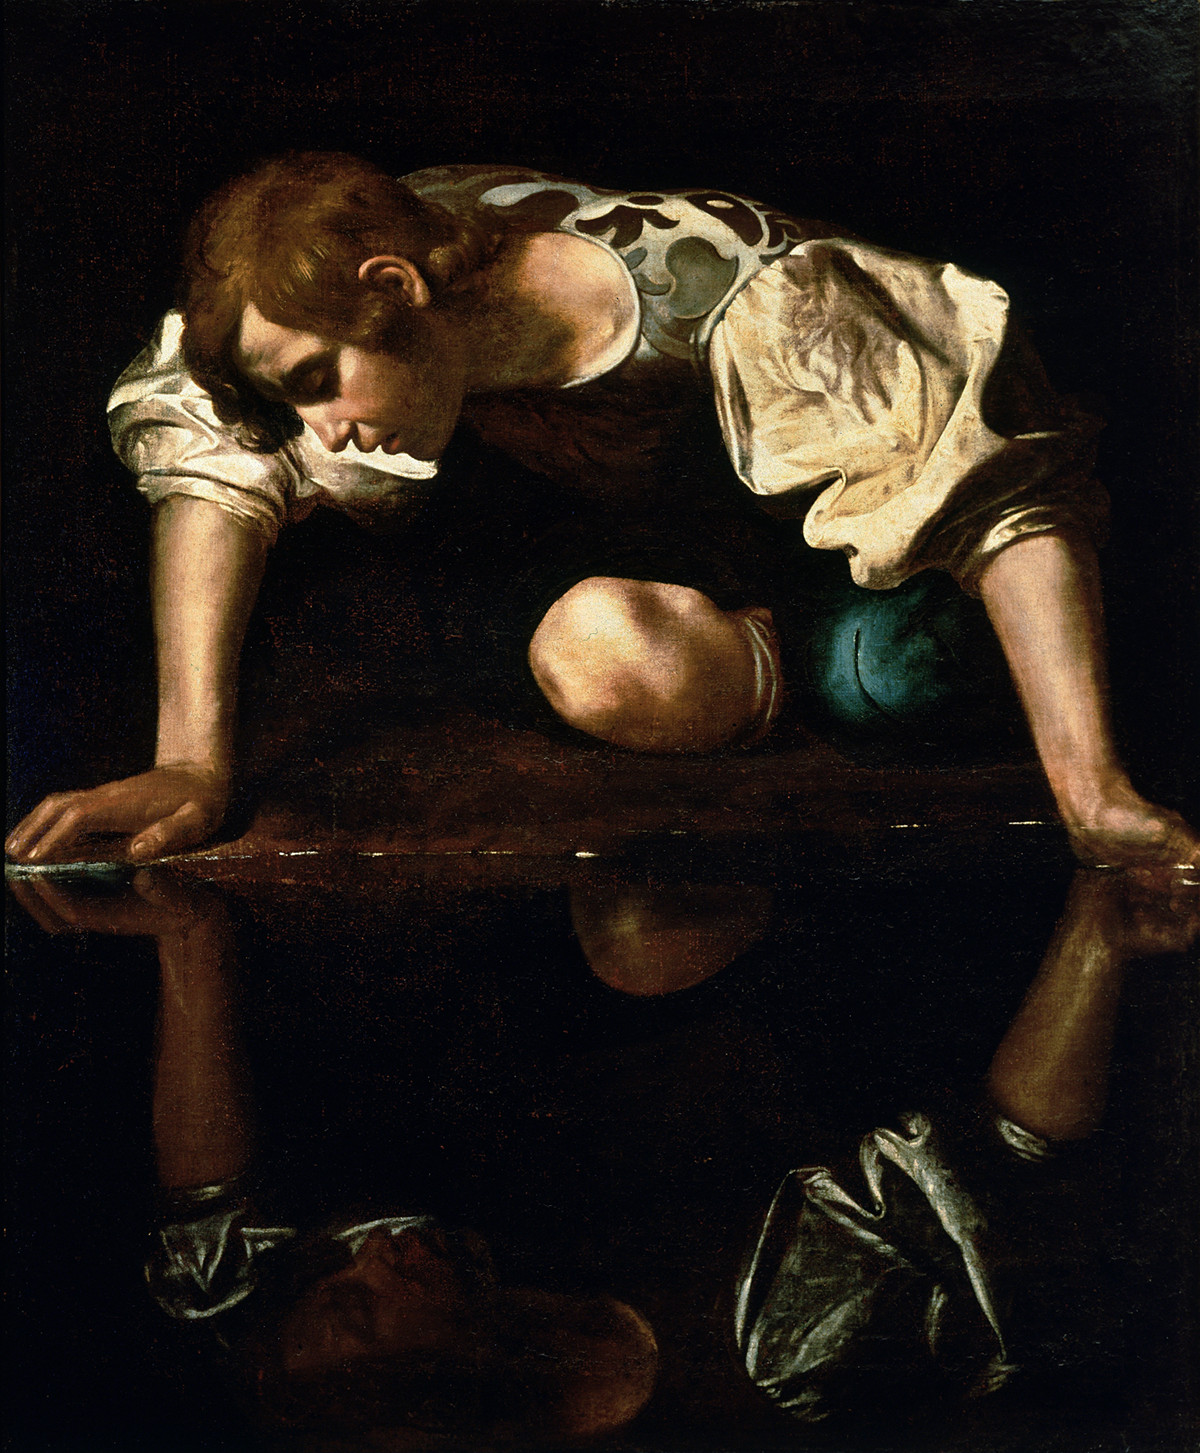 Narcissus by Caravaggio, 1596